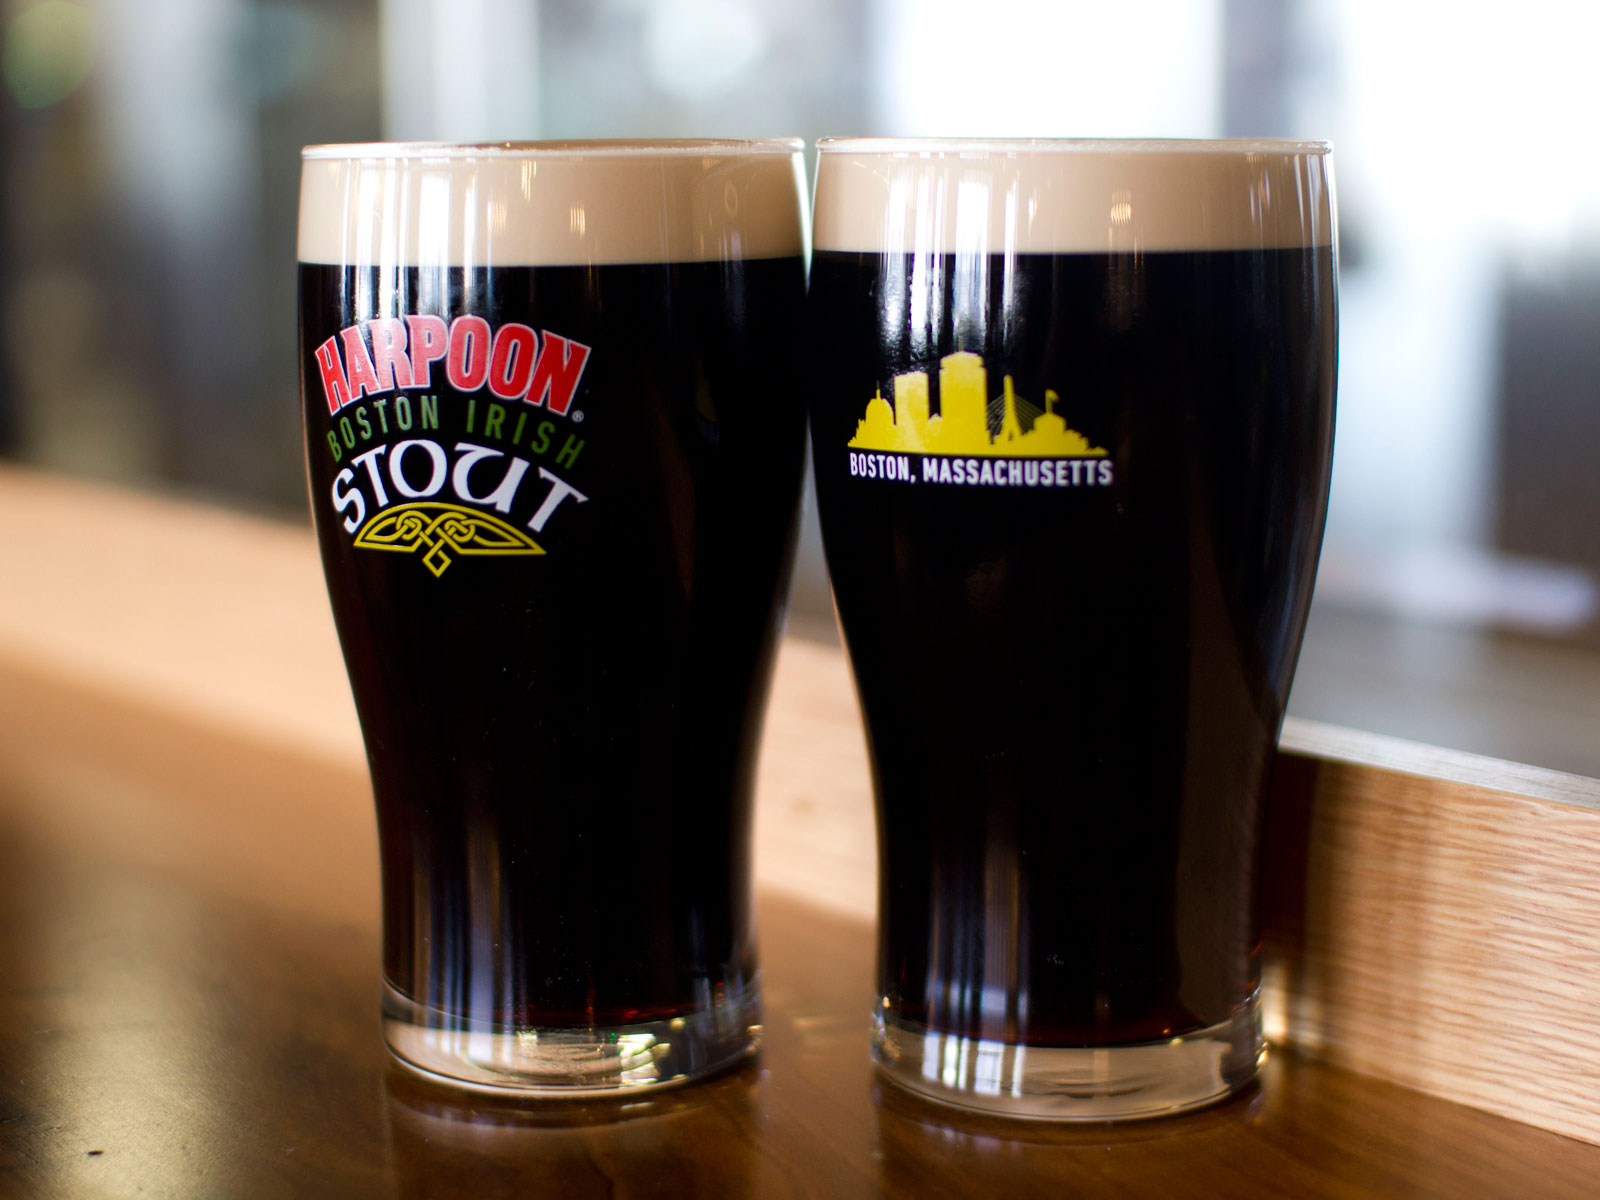 Harpoon Brewery Boston Irish Stout